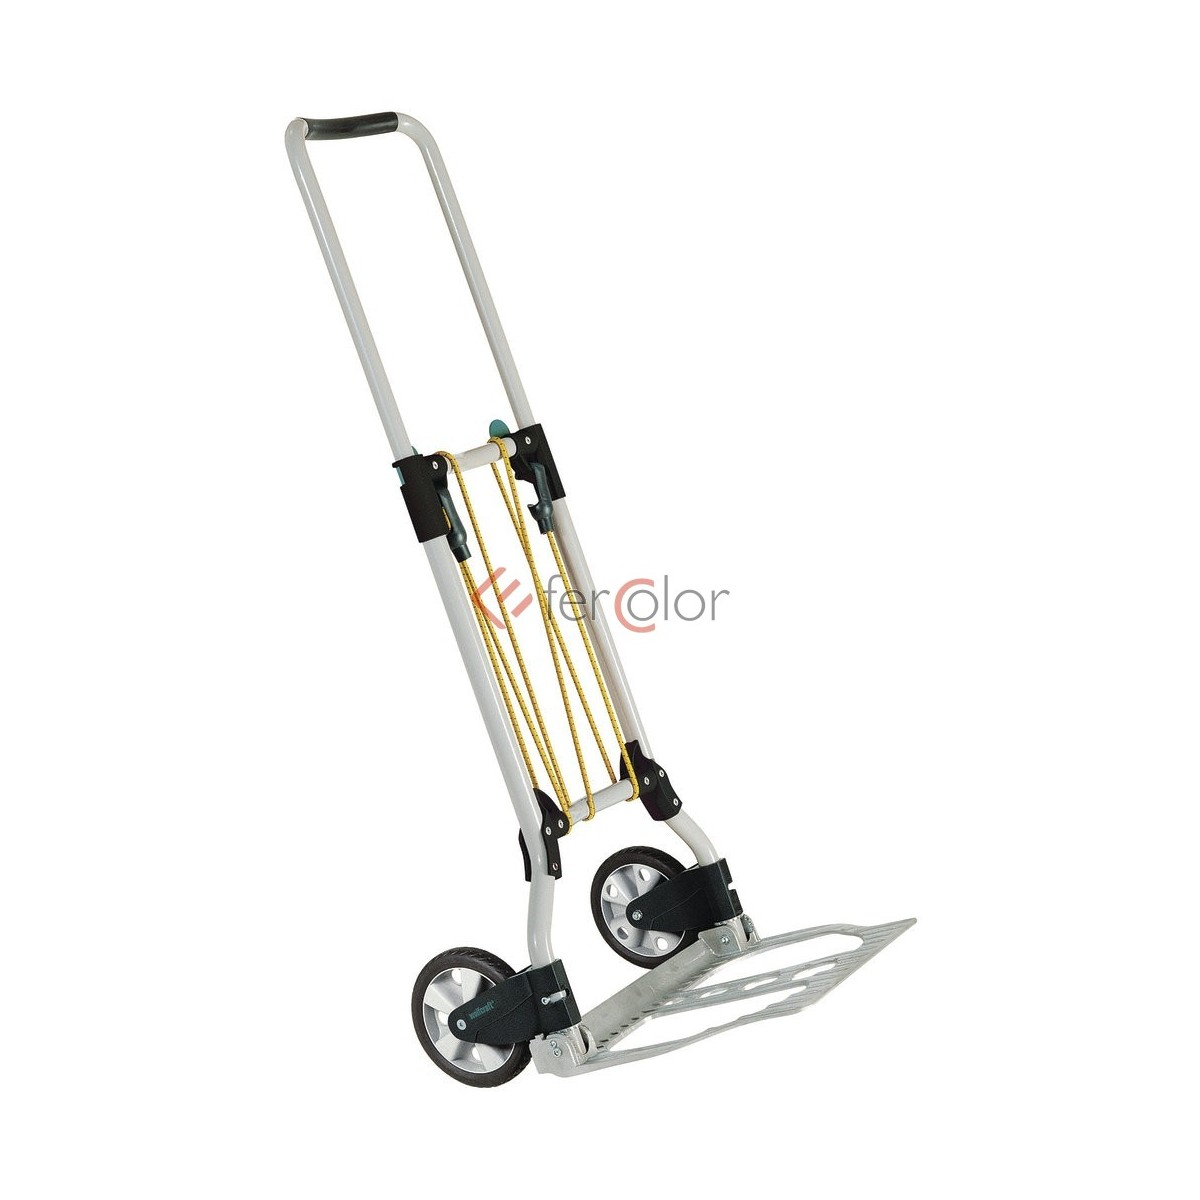 CARRELLO PROFESSIONALE RIBALTABILE WOLFCRAFT 70 KG - art. TS 600